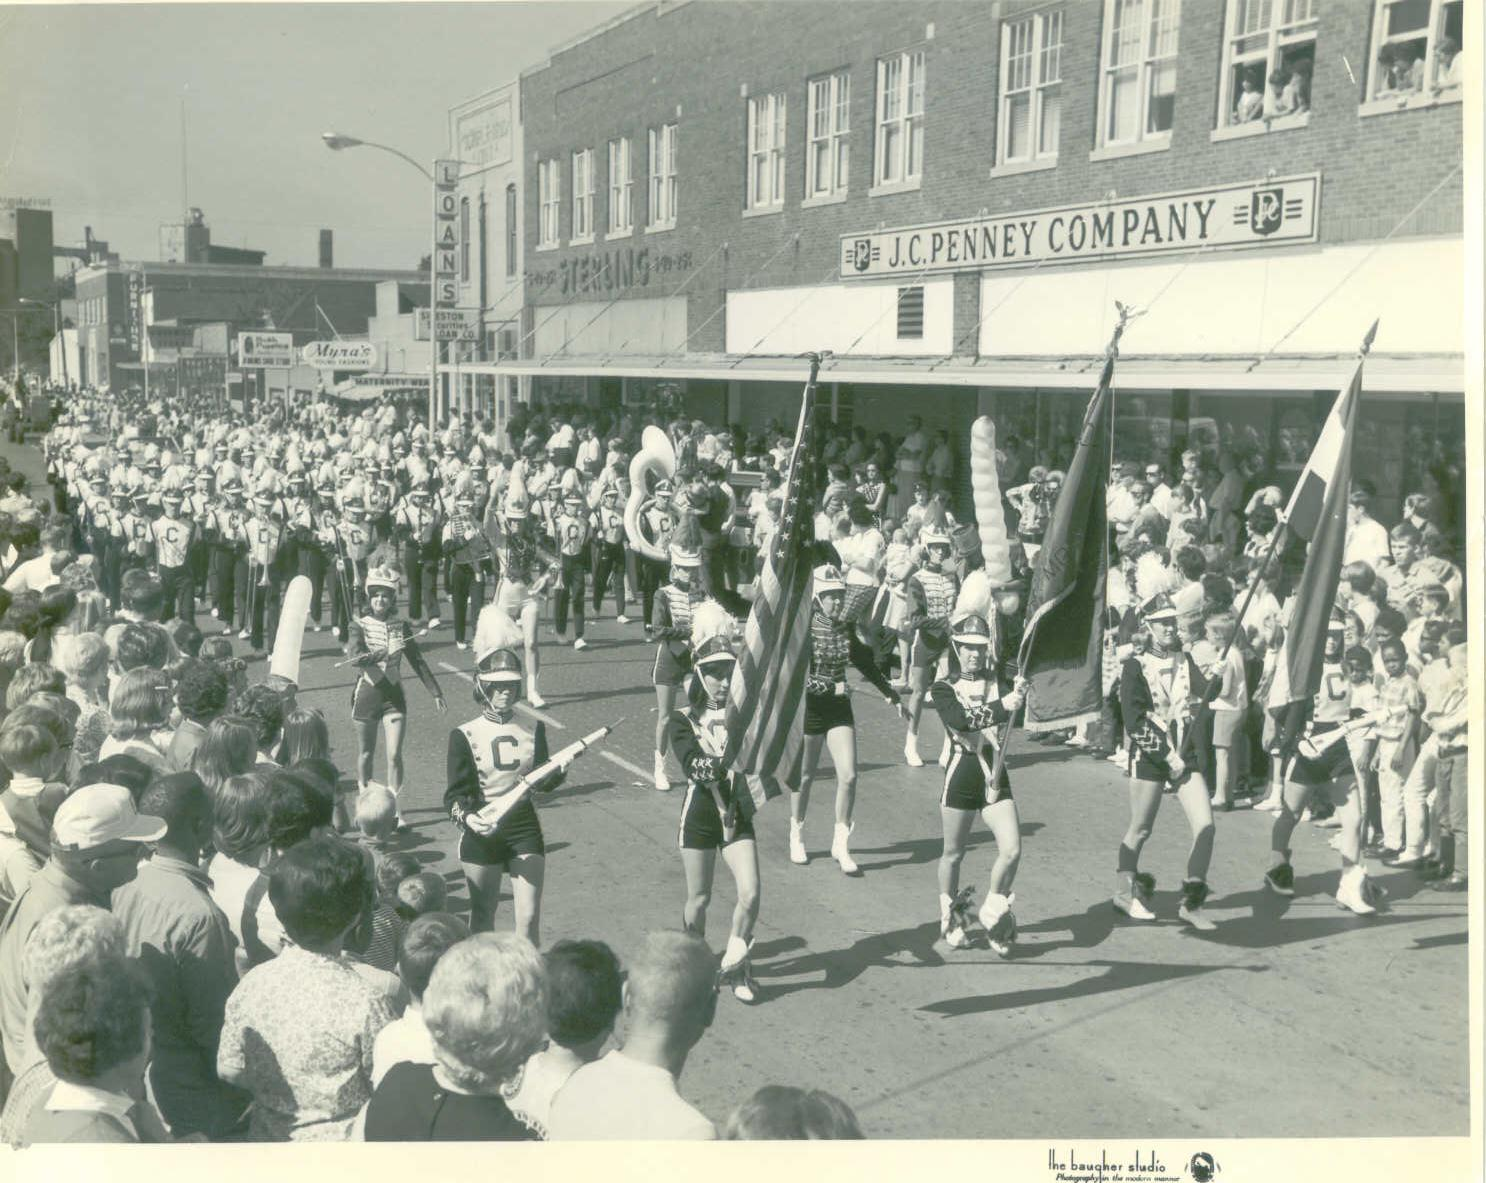 COTTON%20CARNIVAL%20PARADE%2C%20SIXTIES.JPG